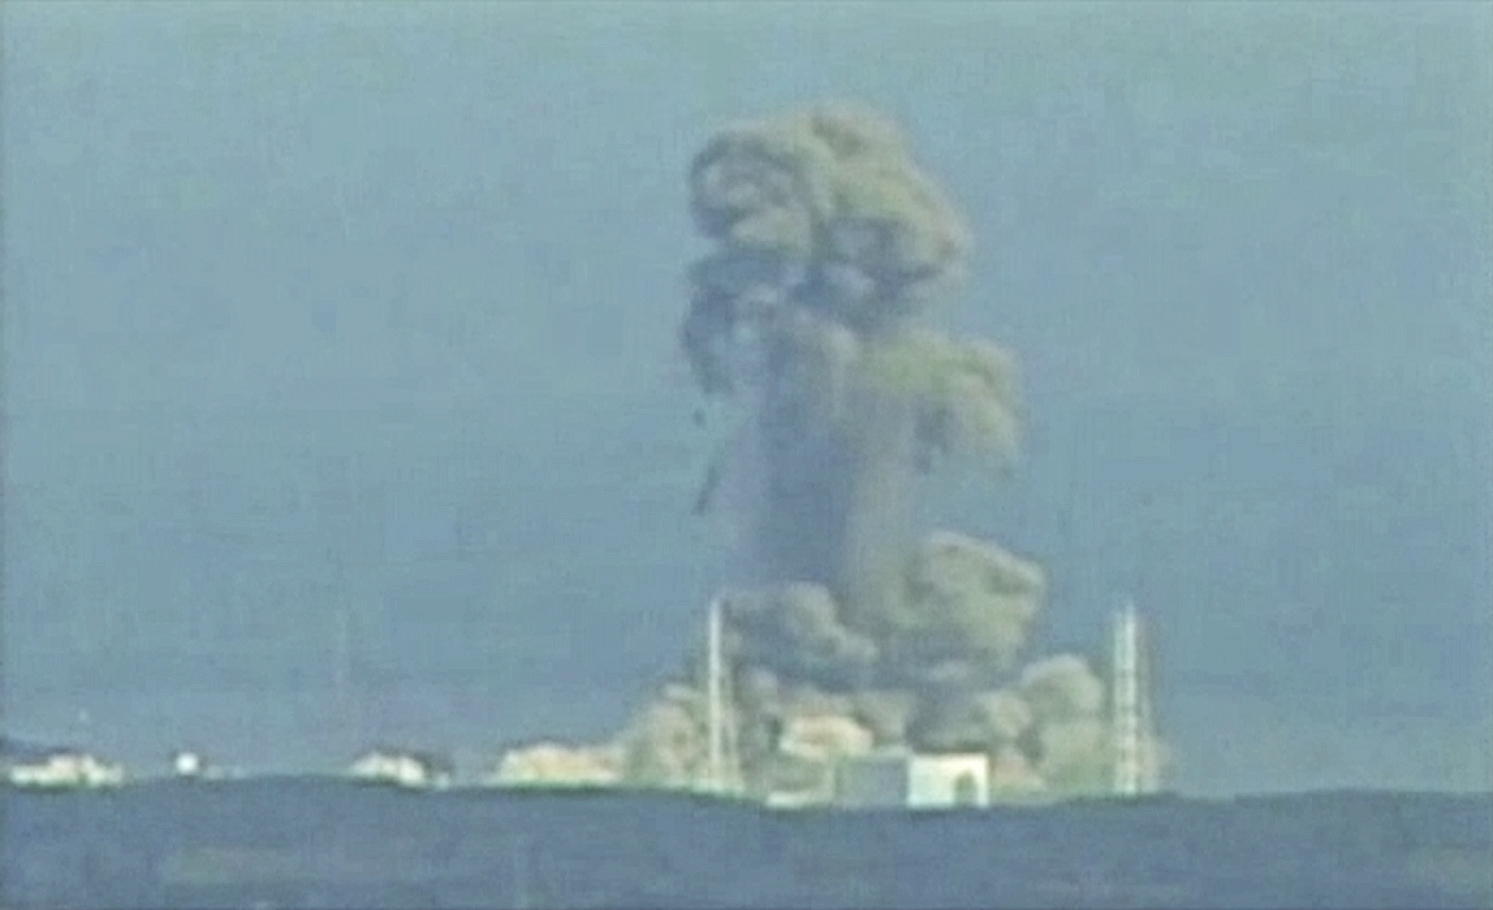 Smoke rises from Fukushima Daiichi nuclear power complex in this still image from video footage